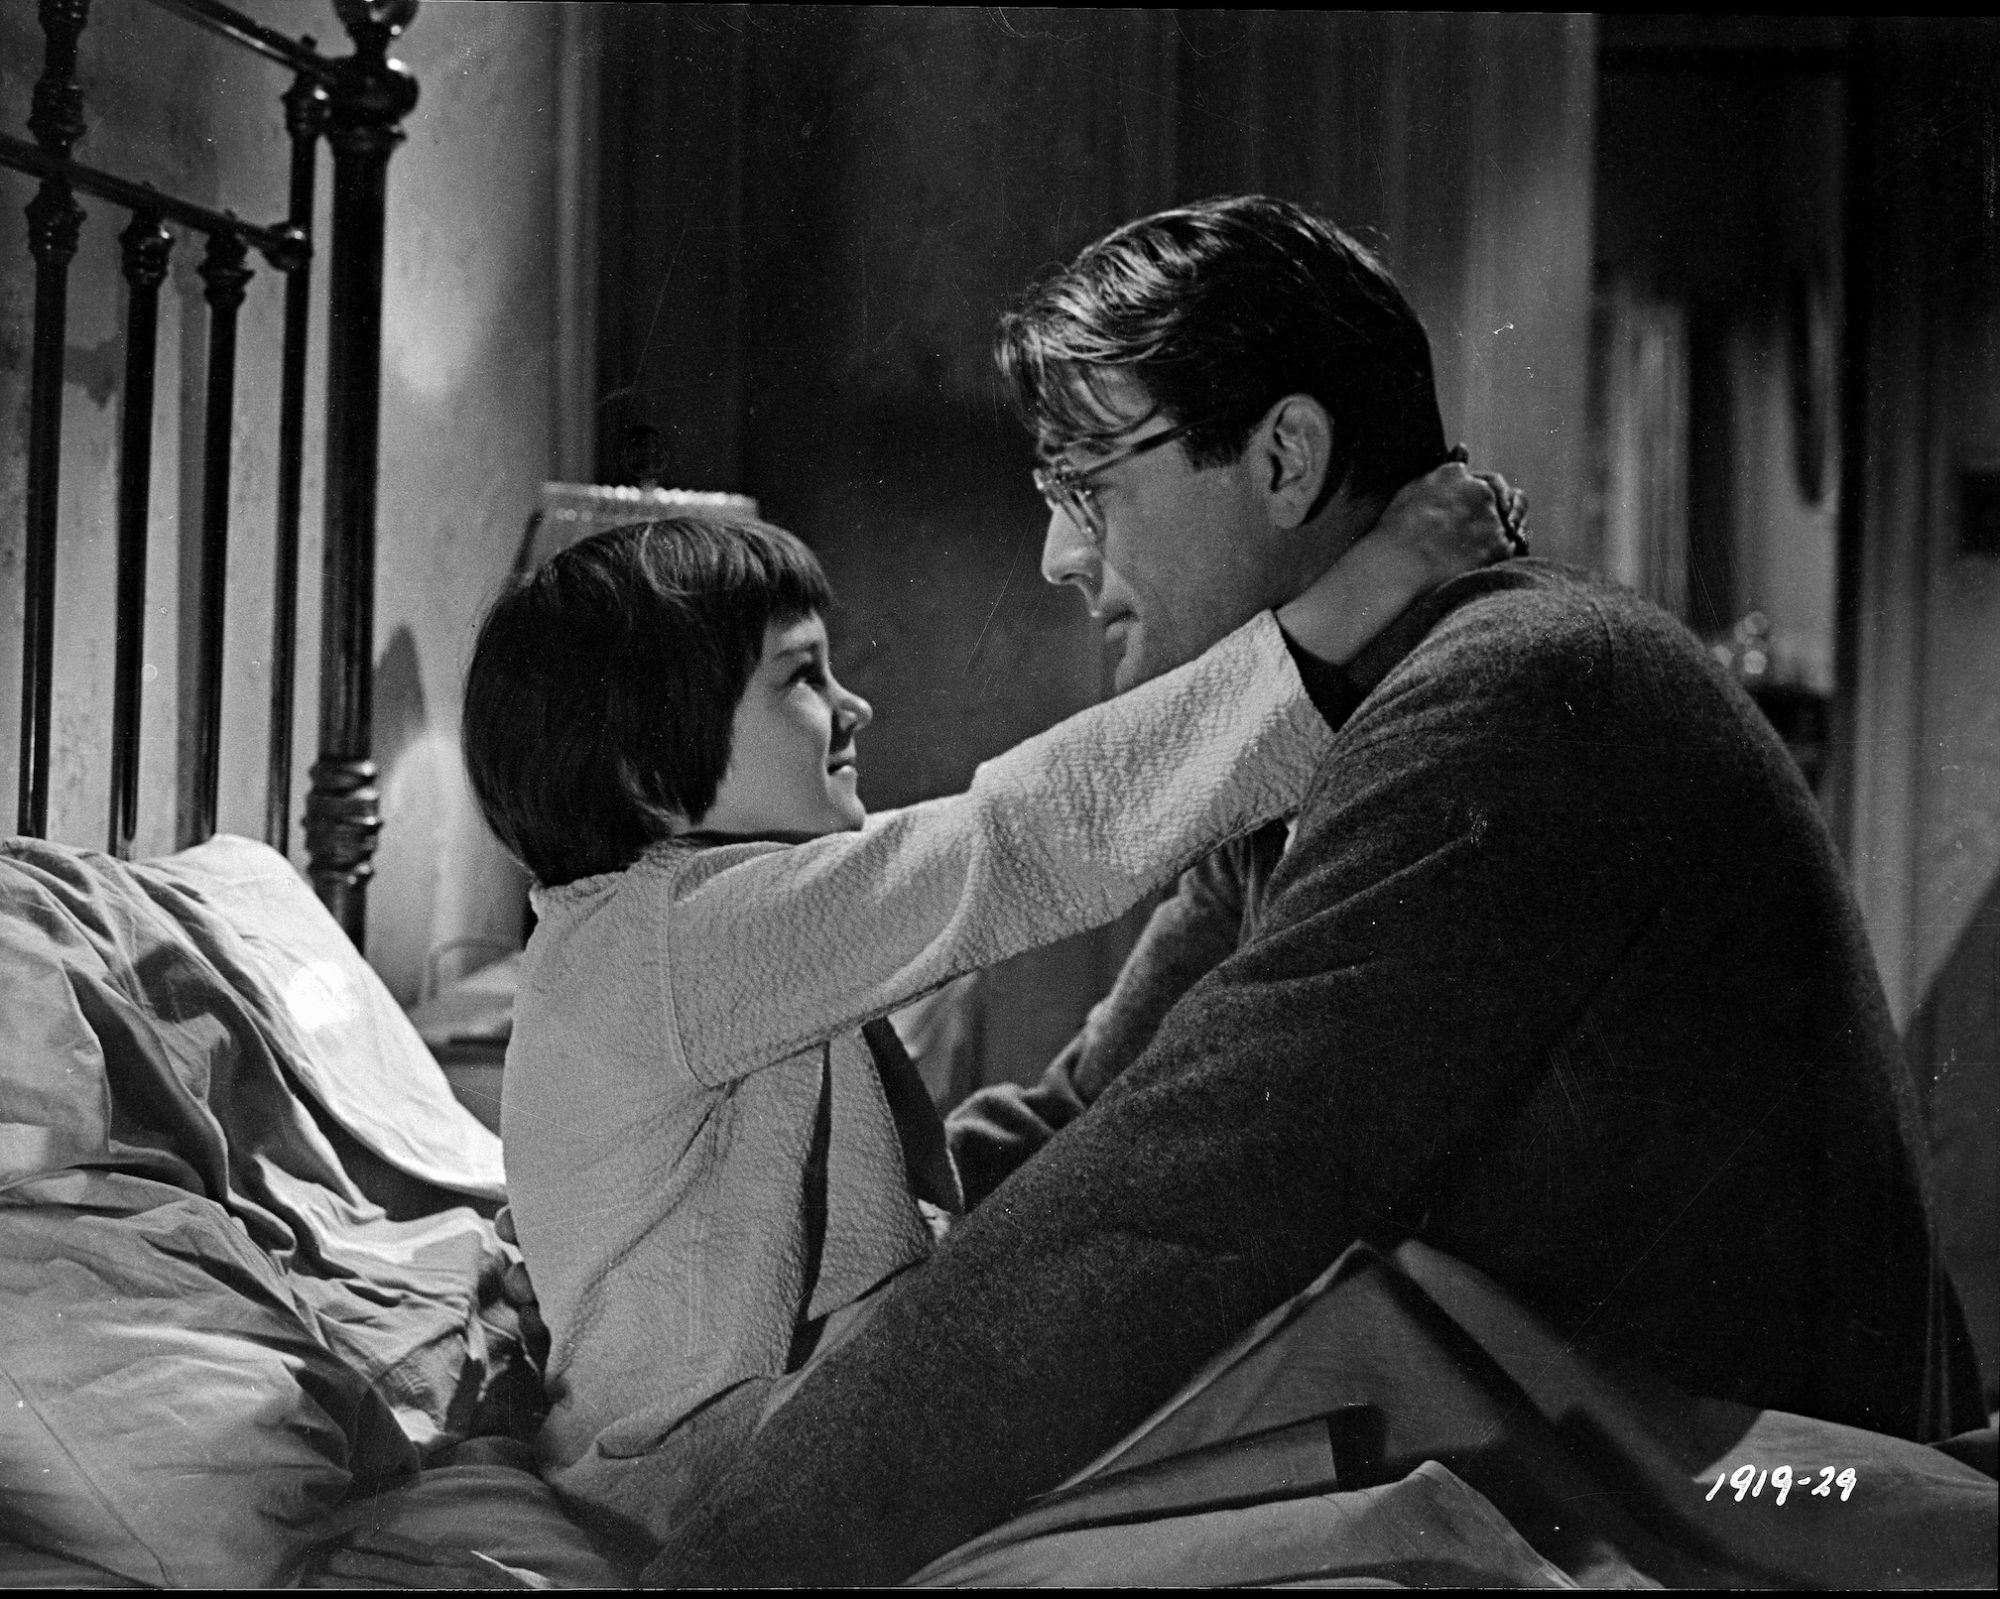 Mary Badham and Gregory Peck To Kill a Mockingbird